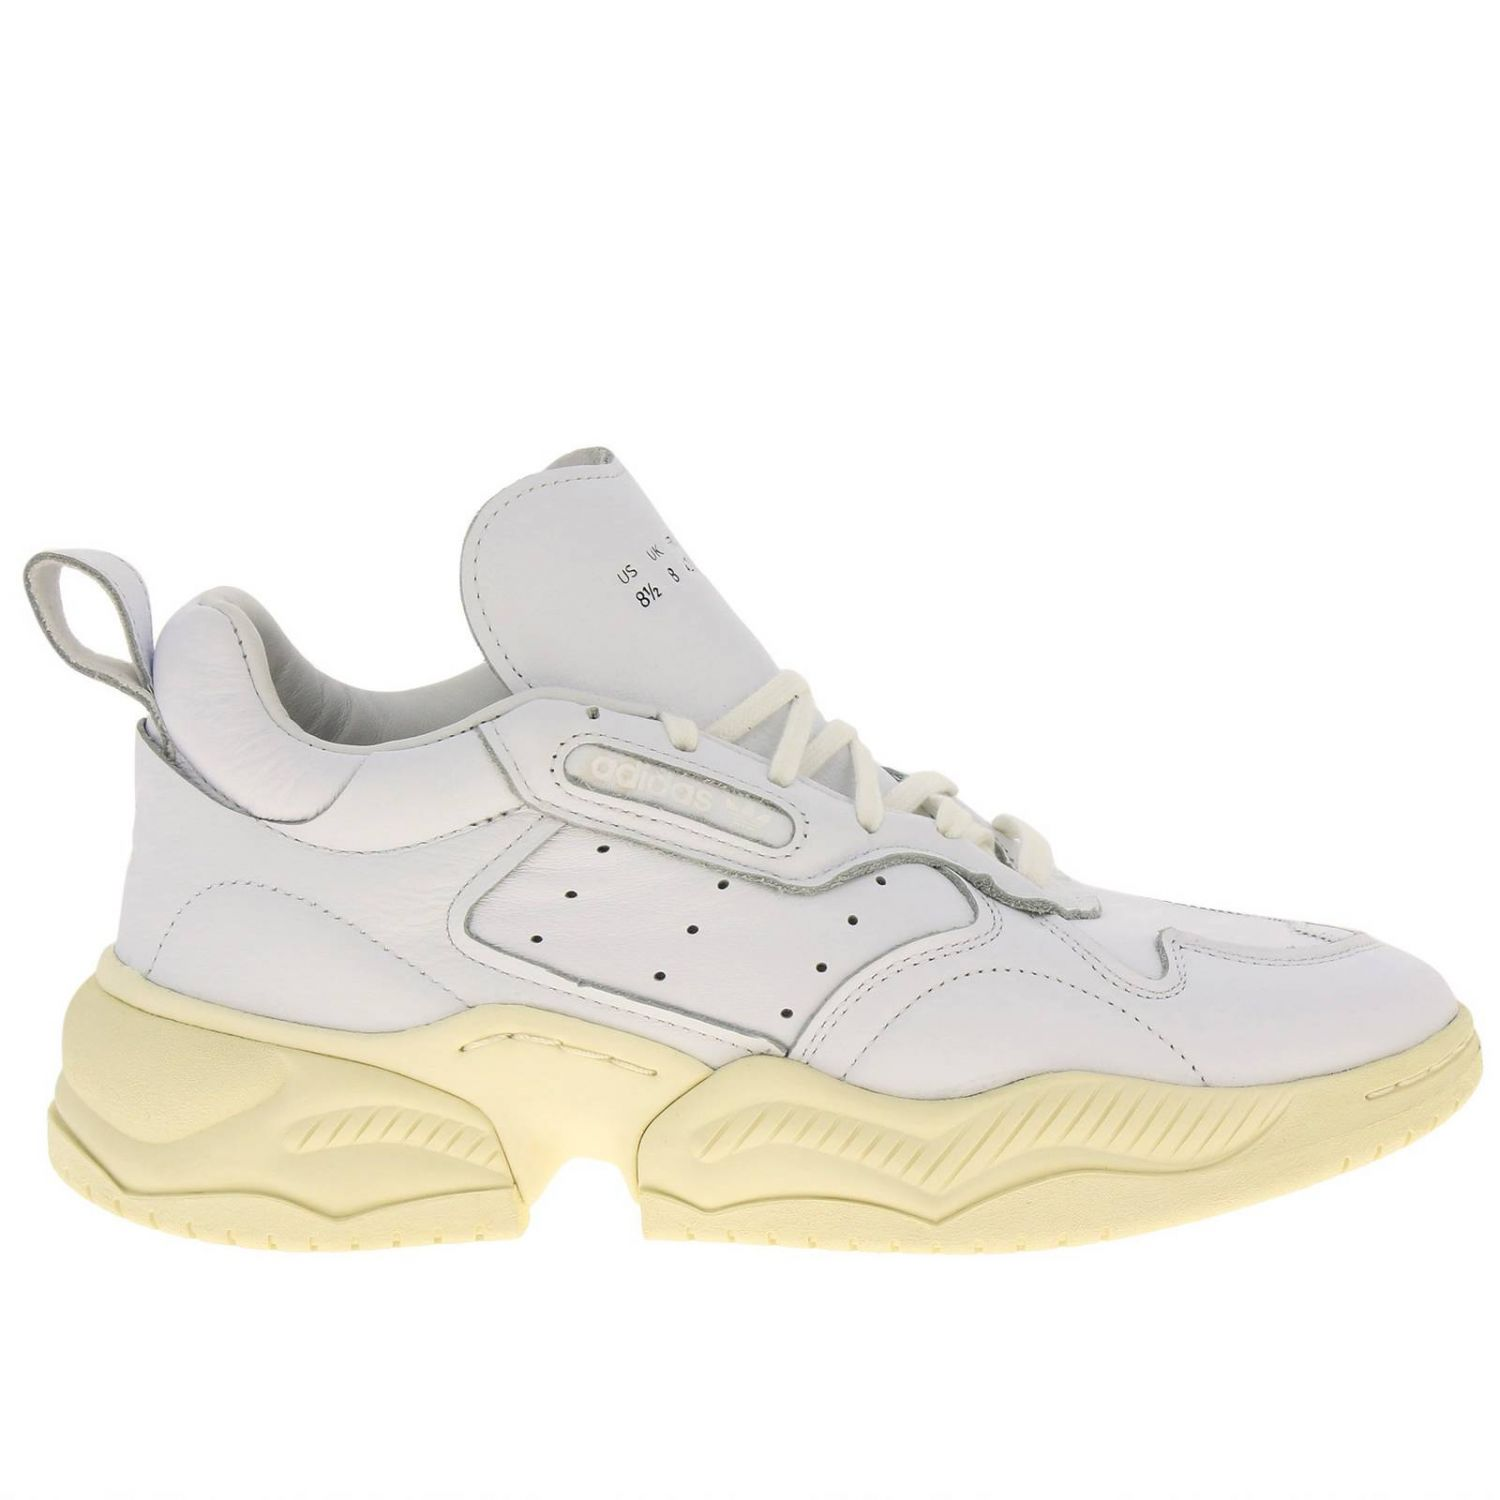 Sneakers Adidas Originals: Supercourt RX Adidas Originals sneakers in leather with holes and maxi sole white 1